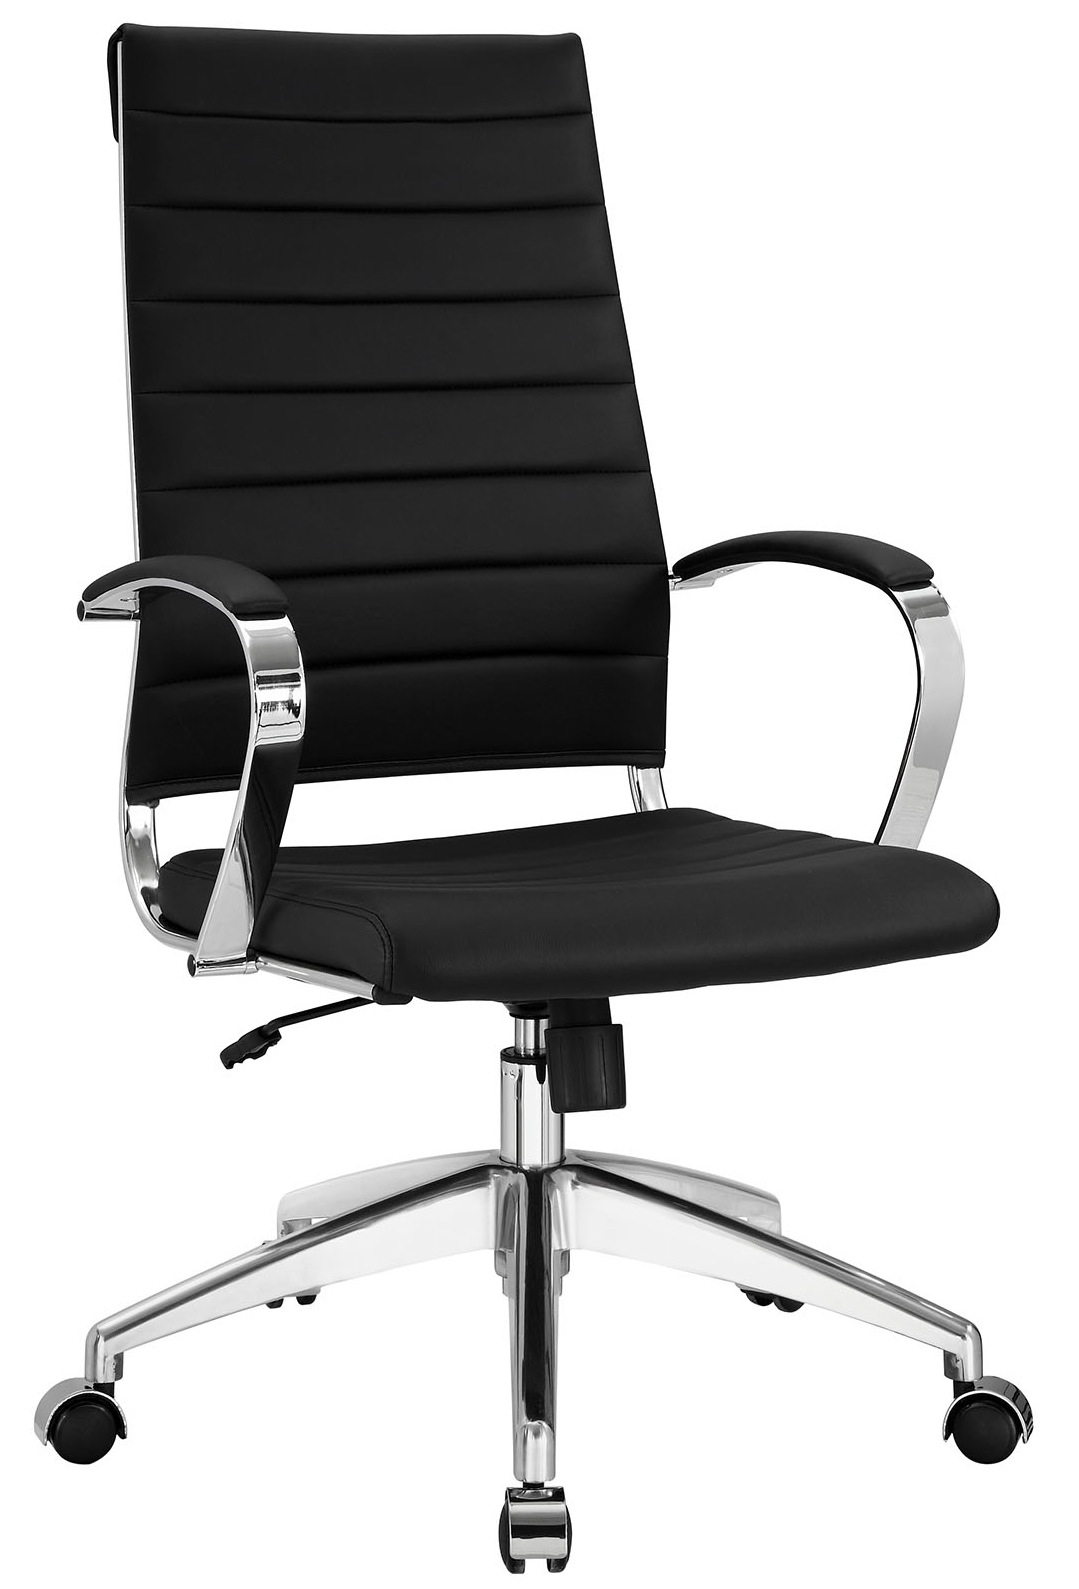 Black Office Chairs Aria Leather High Back Office Chair Many Colors